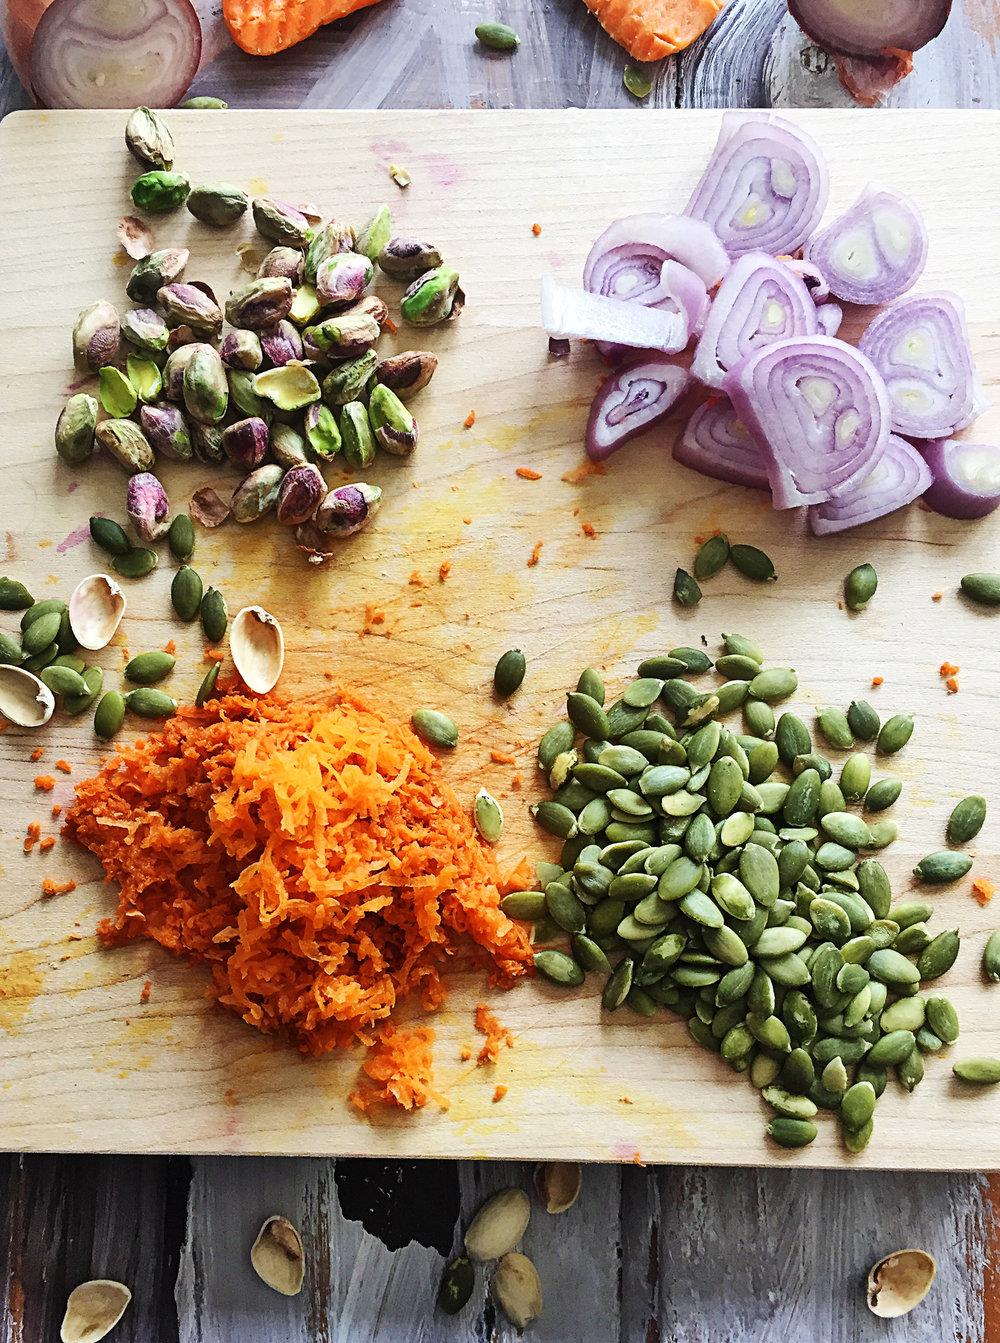 2. Grate carrots and measure out pistachios + pumpkin seeds. Roughly chop shallot. Get all ingredients from flaxseed egg through black pepper prepared and place into food processor.